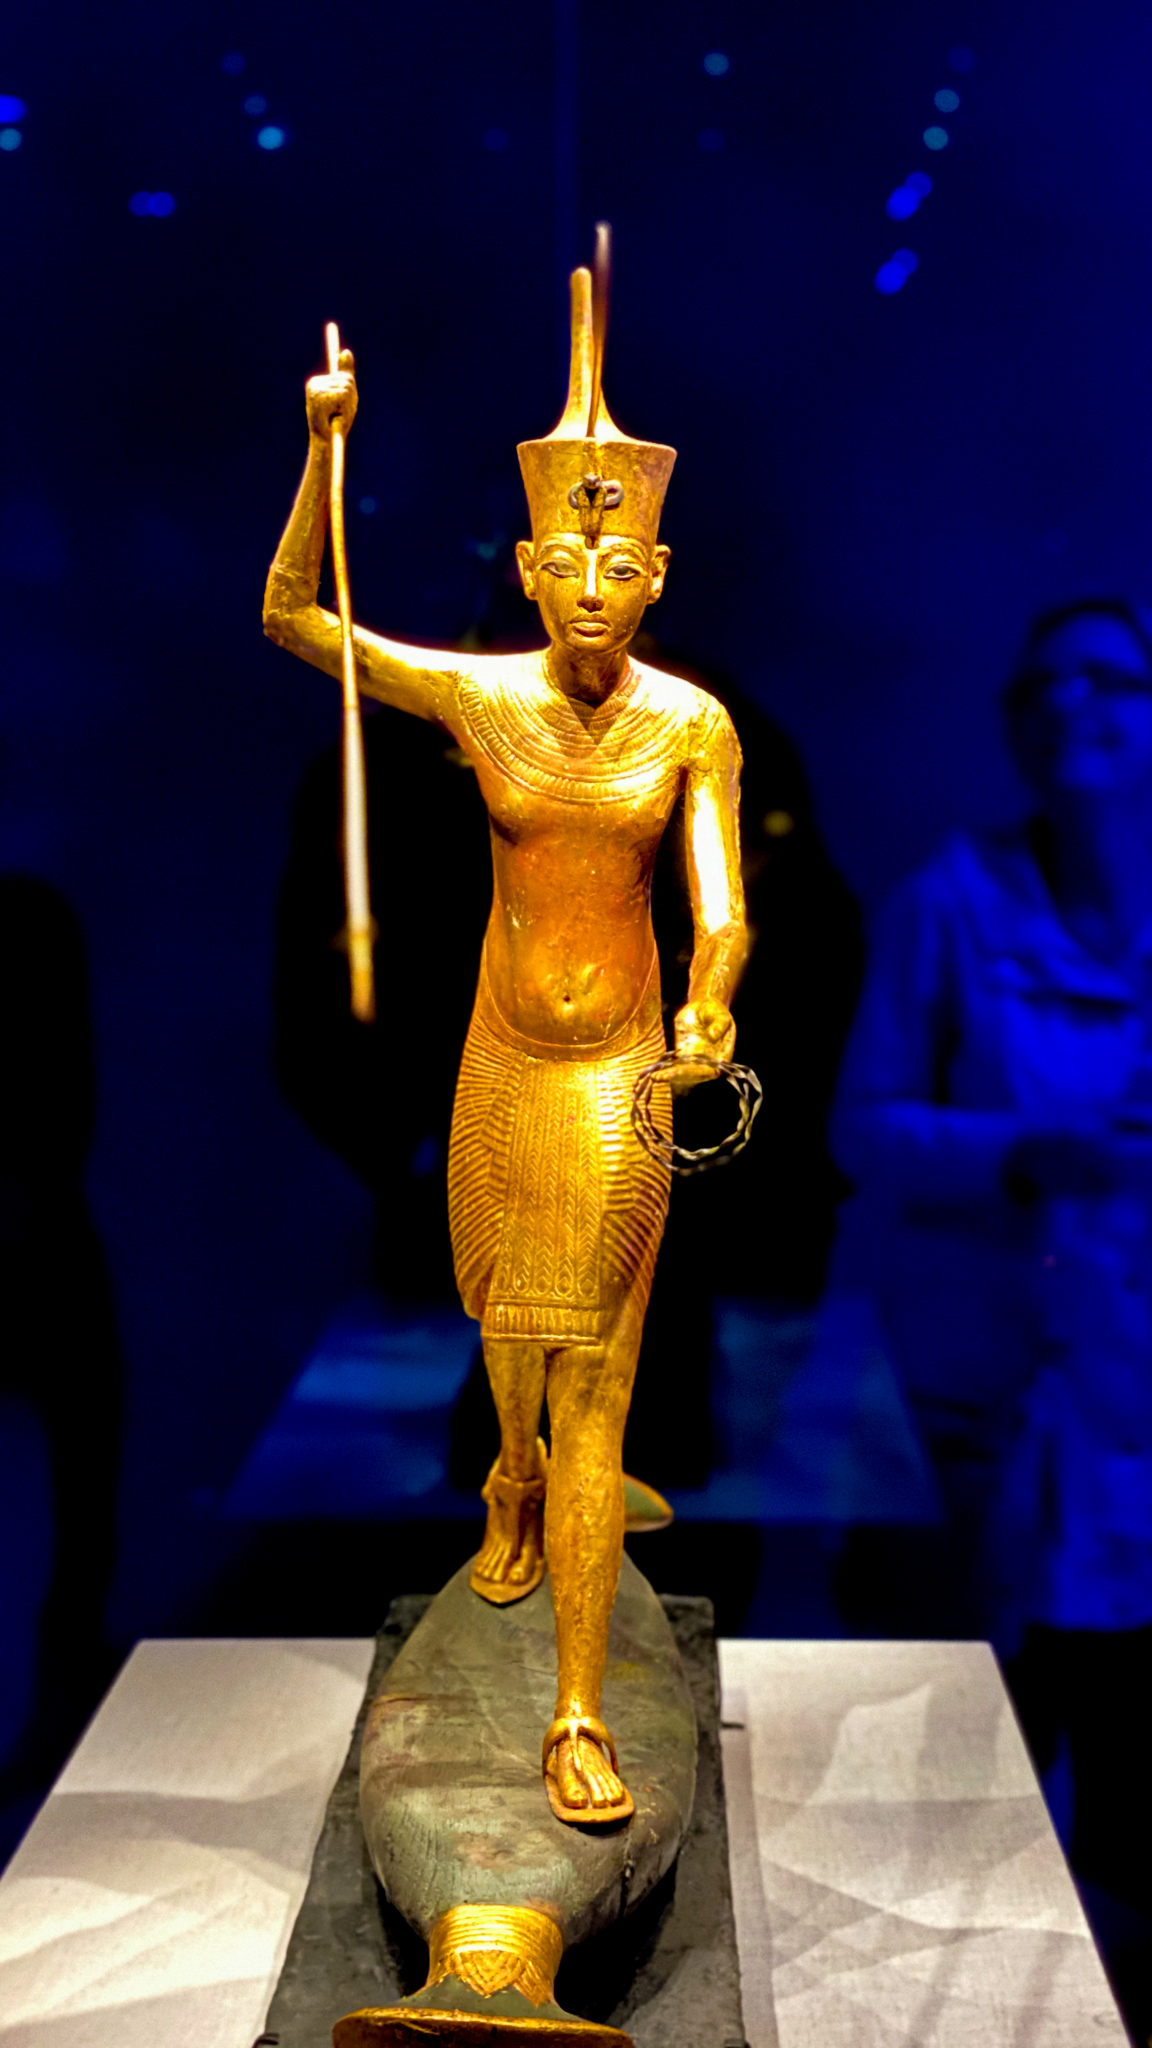 Tutankhamun London Exhibition - Things To Do West London | The LDN Diaries